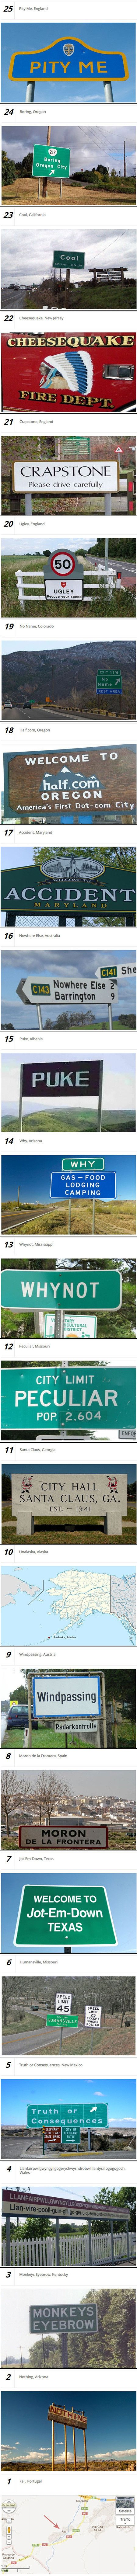 Here are some funny and strange city names you will not believe actually exist. These are hilarious<< *cheesequake*